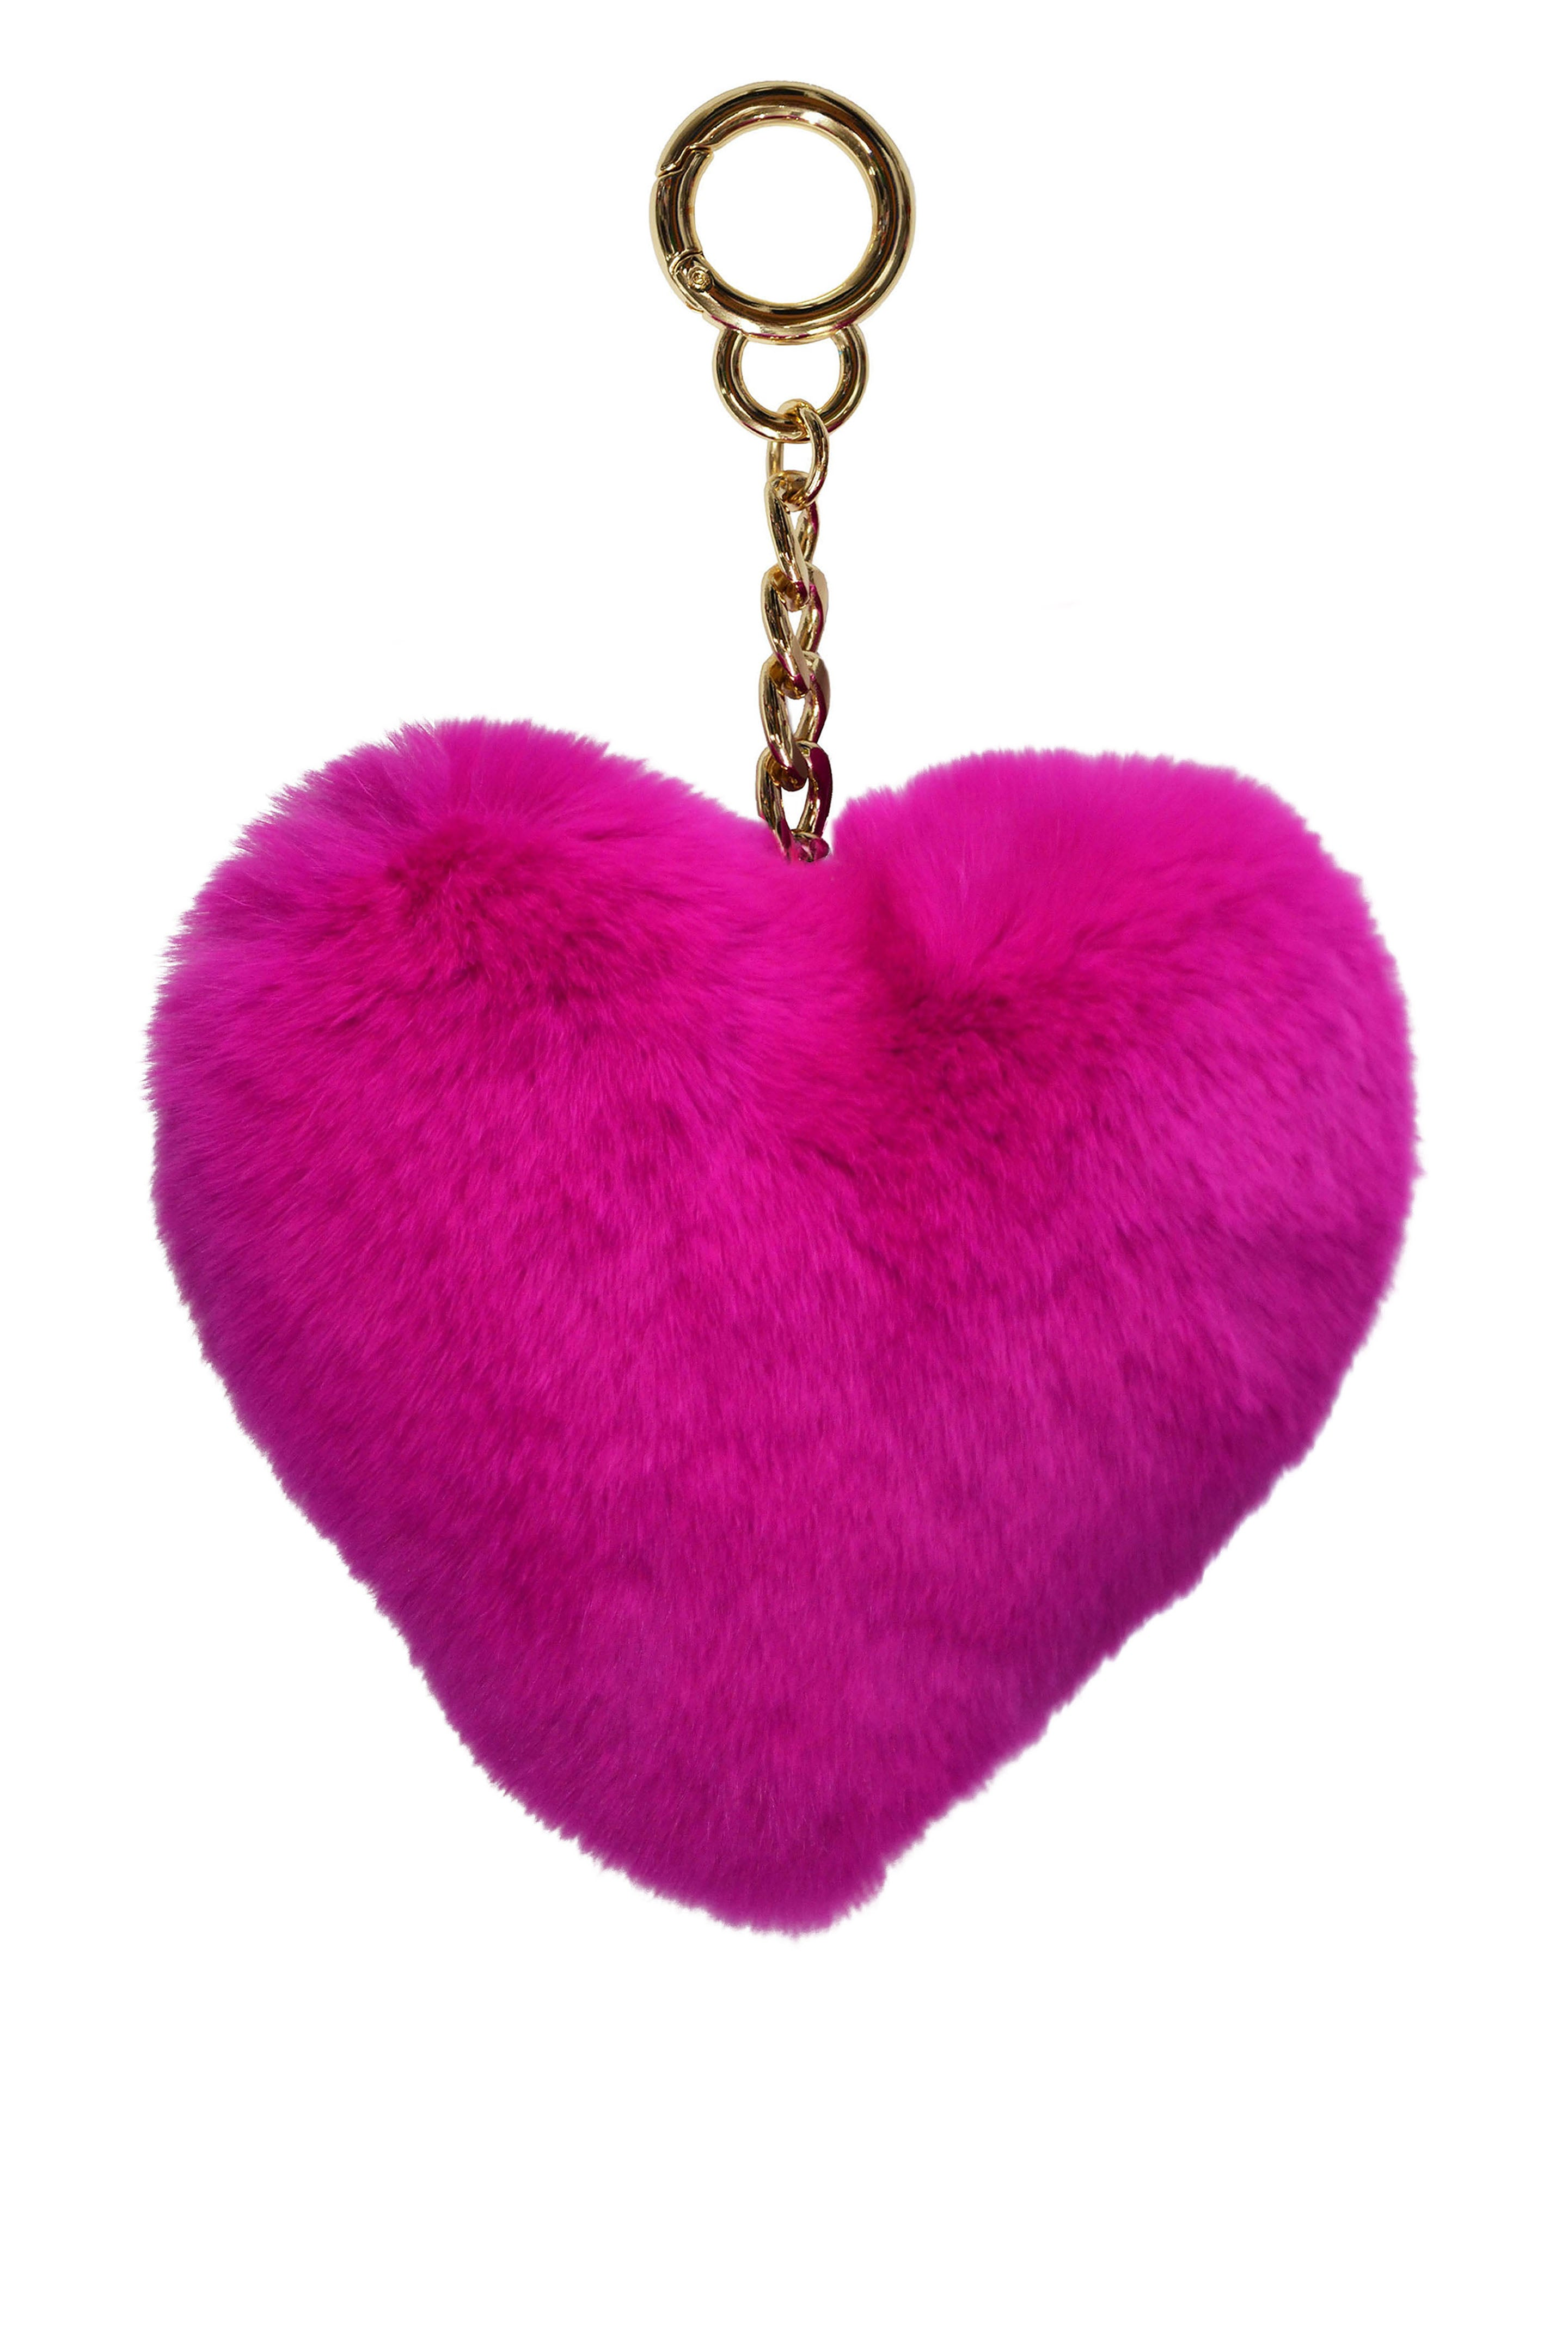 Heart Keychain in Fuchsia